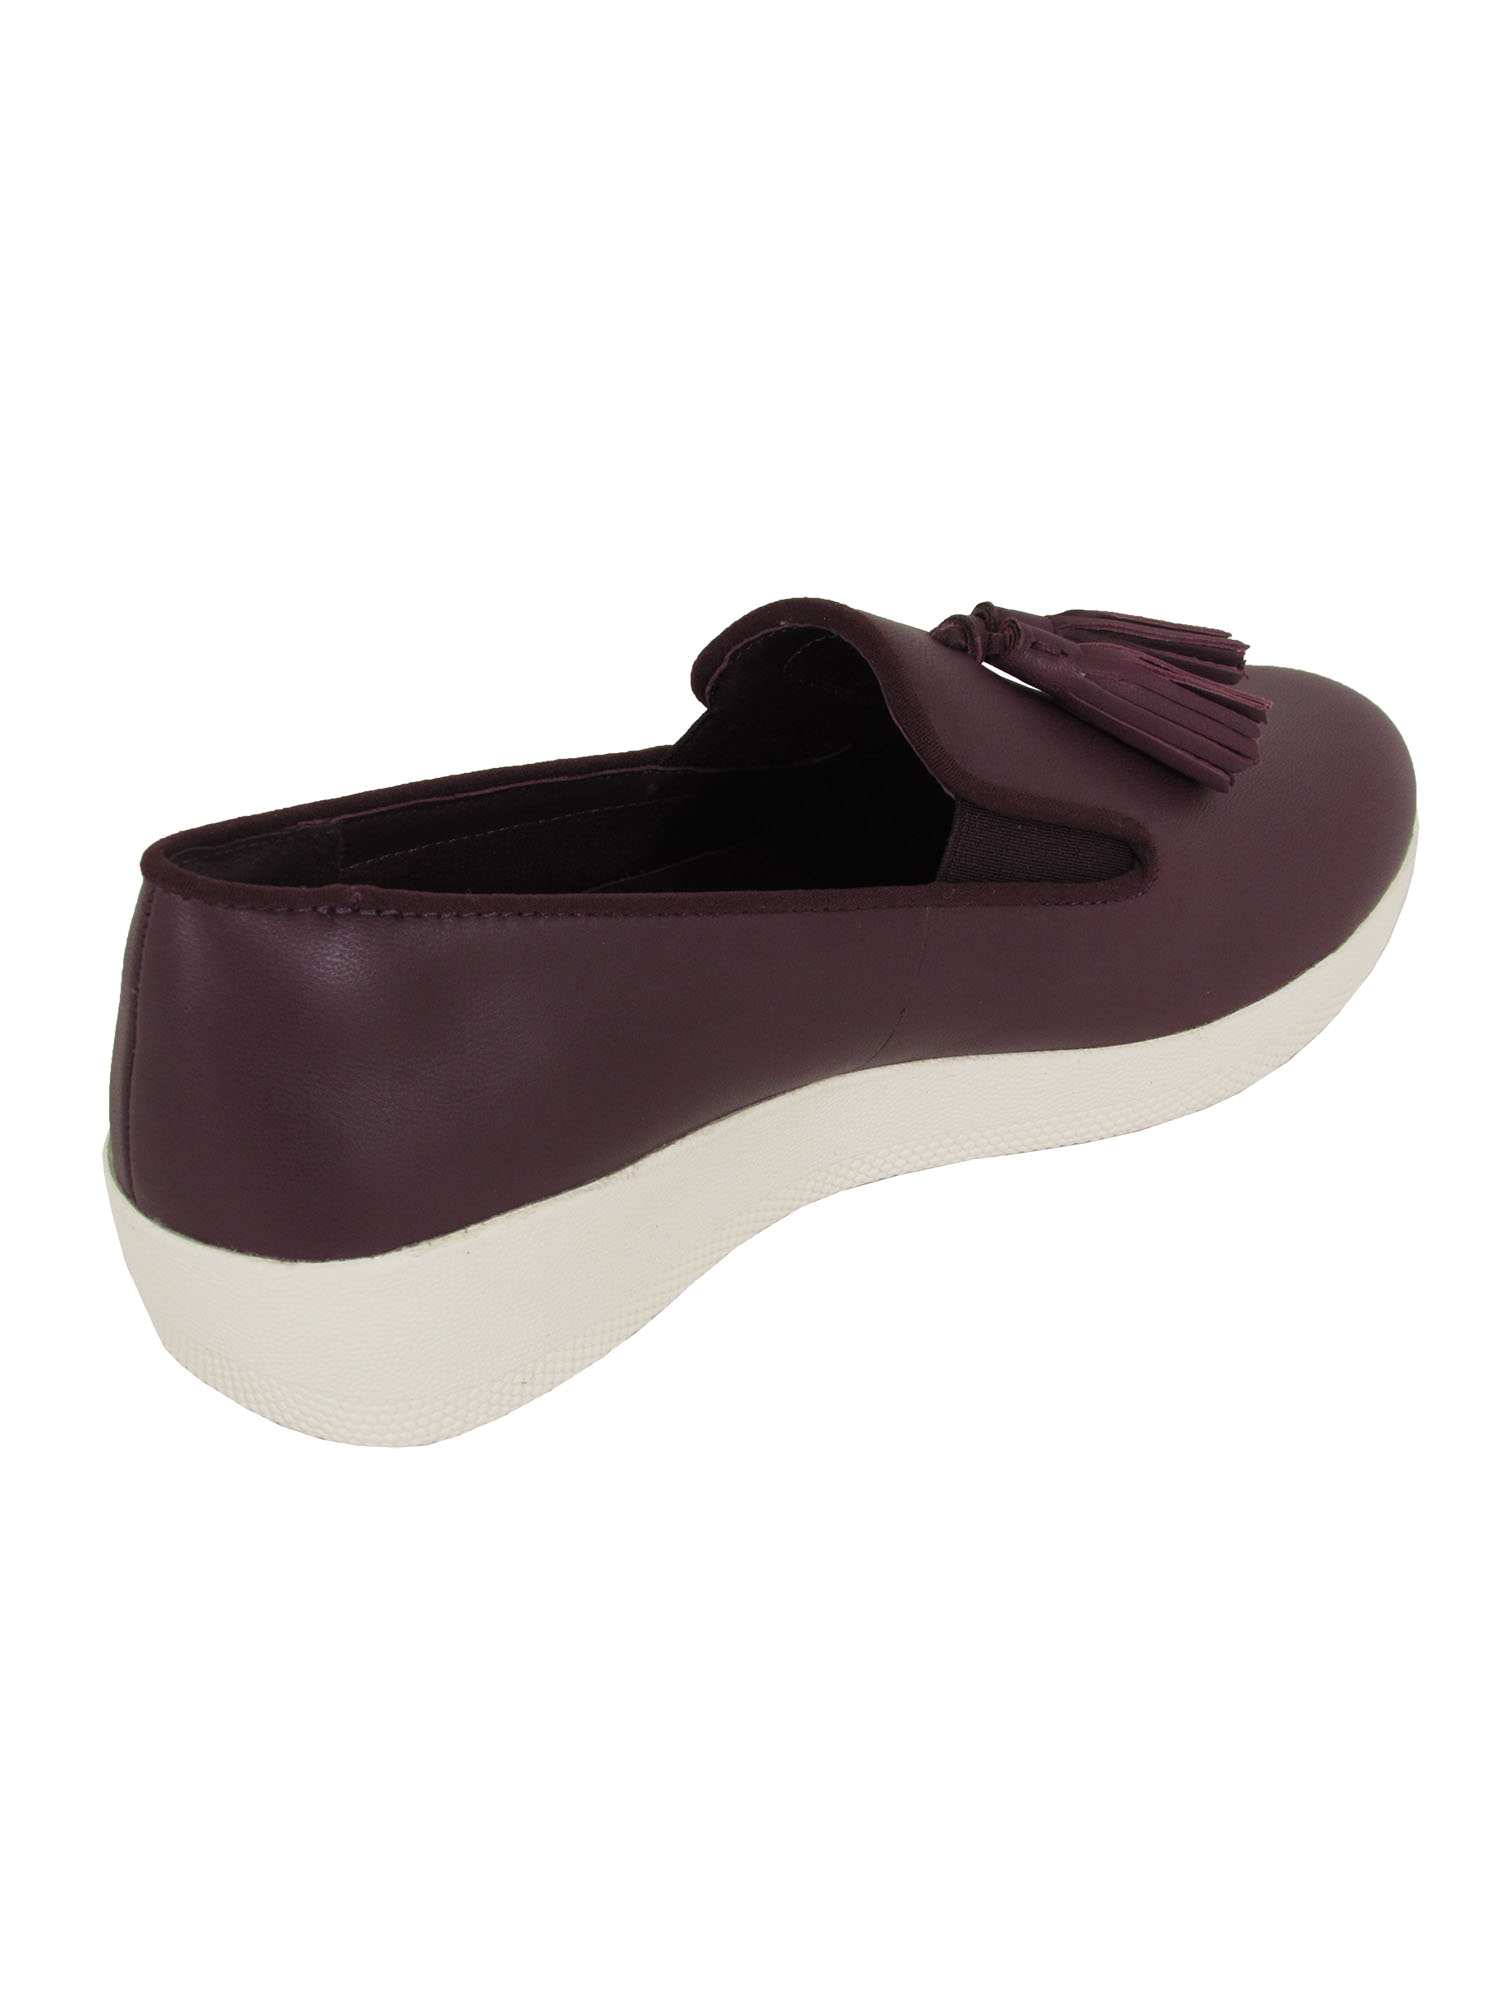 FitFlop-Womens-Tassel-Superskate-Slip-On-Loafer-Shoes thumbnail 4